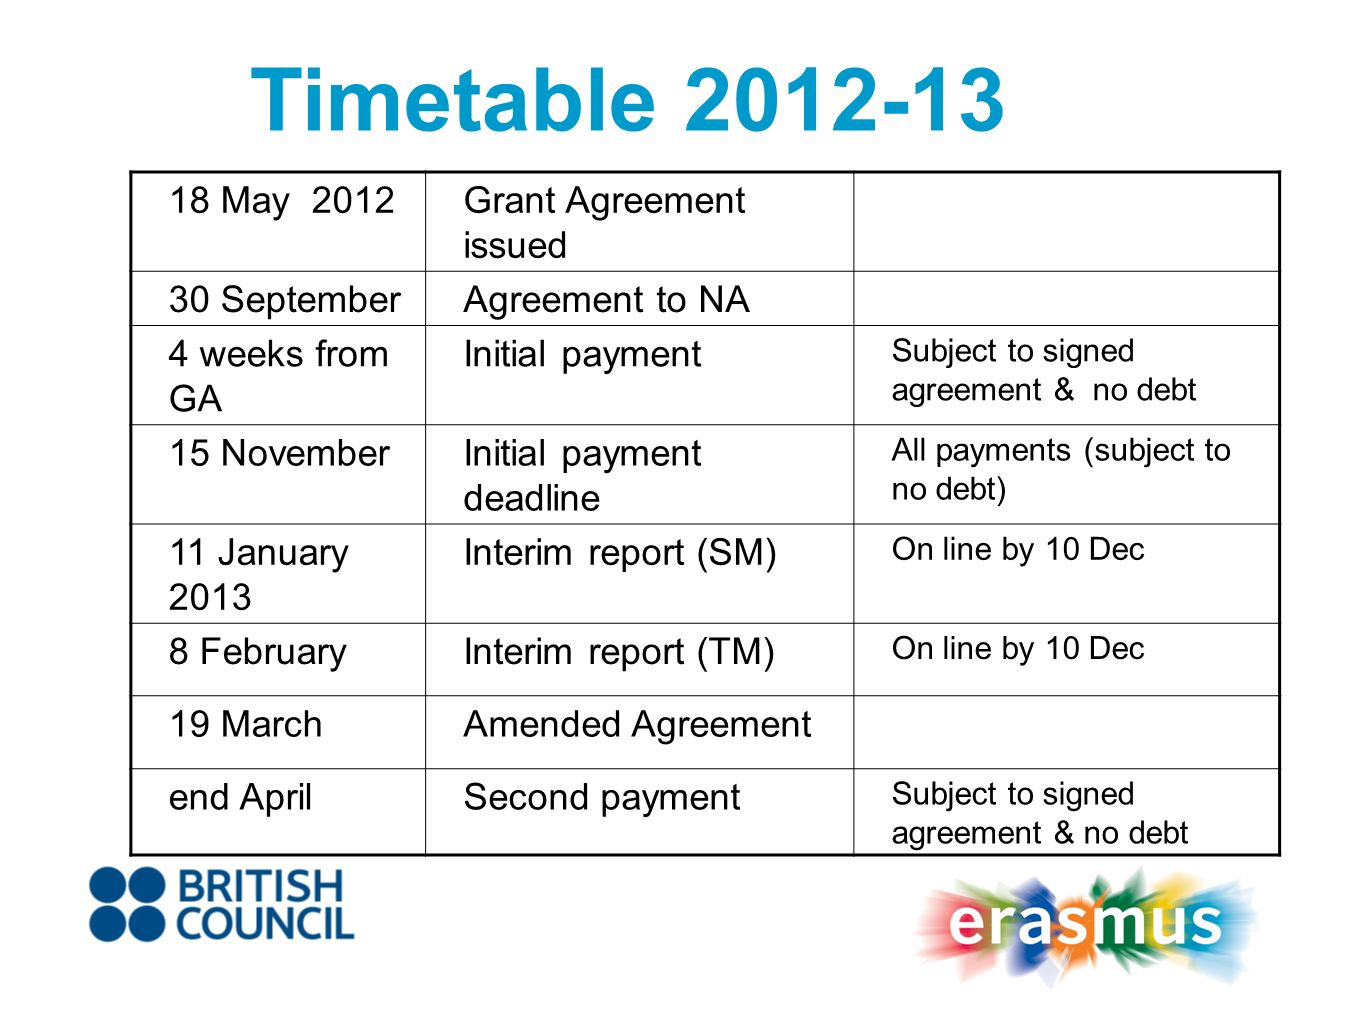 Timetable 2012-13 18 May 2012Grant Agreement issued 30 SeptemberAgreement to NA 4 weeks from GA Initial payment Subject to signed agreement & no debt 15 NovemberInitial payment deadline All payments (subject to no debt) 11 January 2013 Interim report (SM) On line by 10 Dec 8 FebruaryInterim report (TM) On line by 10 Dec 19 MarchAmended Agreement end AprilSecond payment Subject to signed agreement & no debt